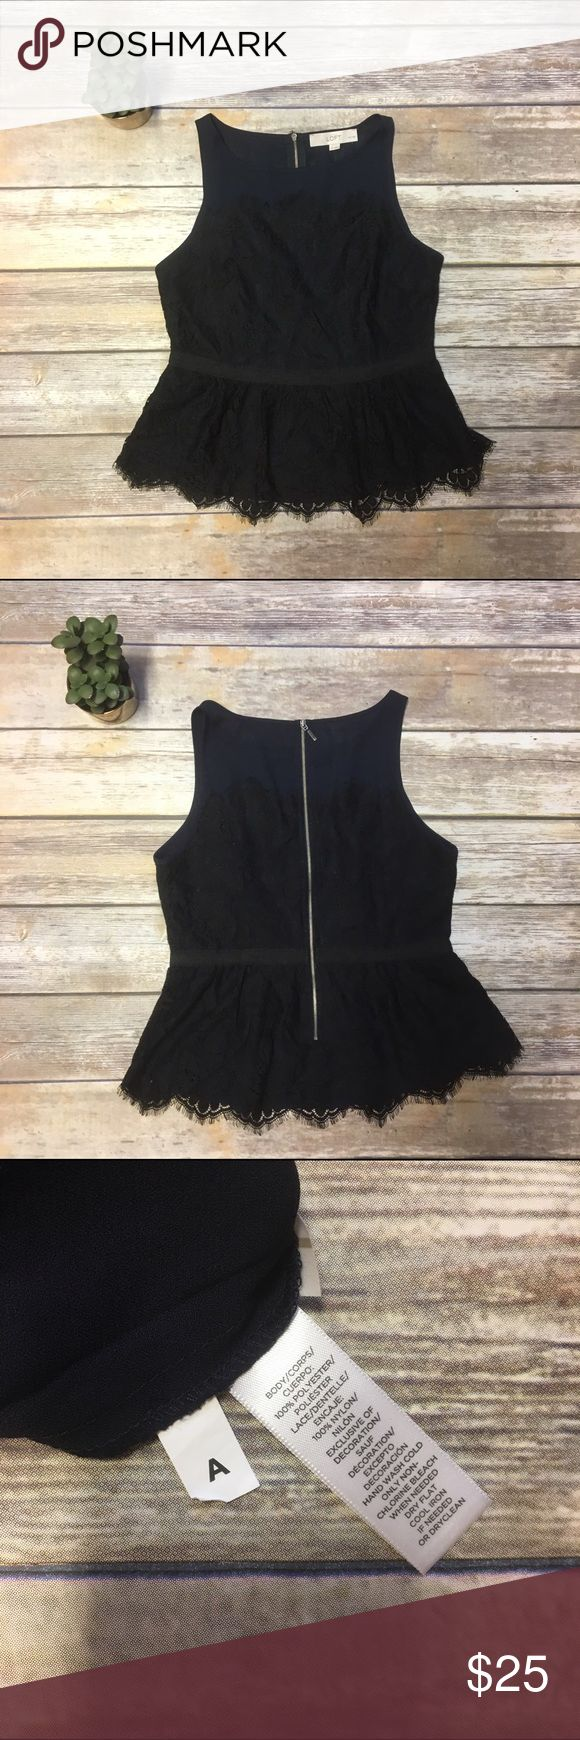 LOFT Petites Black and Navy Lace Peplum Top Gorgeous Peplum top with exposed silver zipper up the back. Top comes in size 2 Petite. LOFT Tops Tank Tops